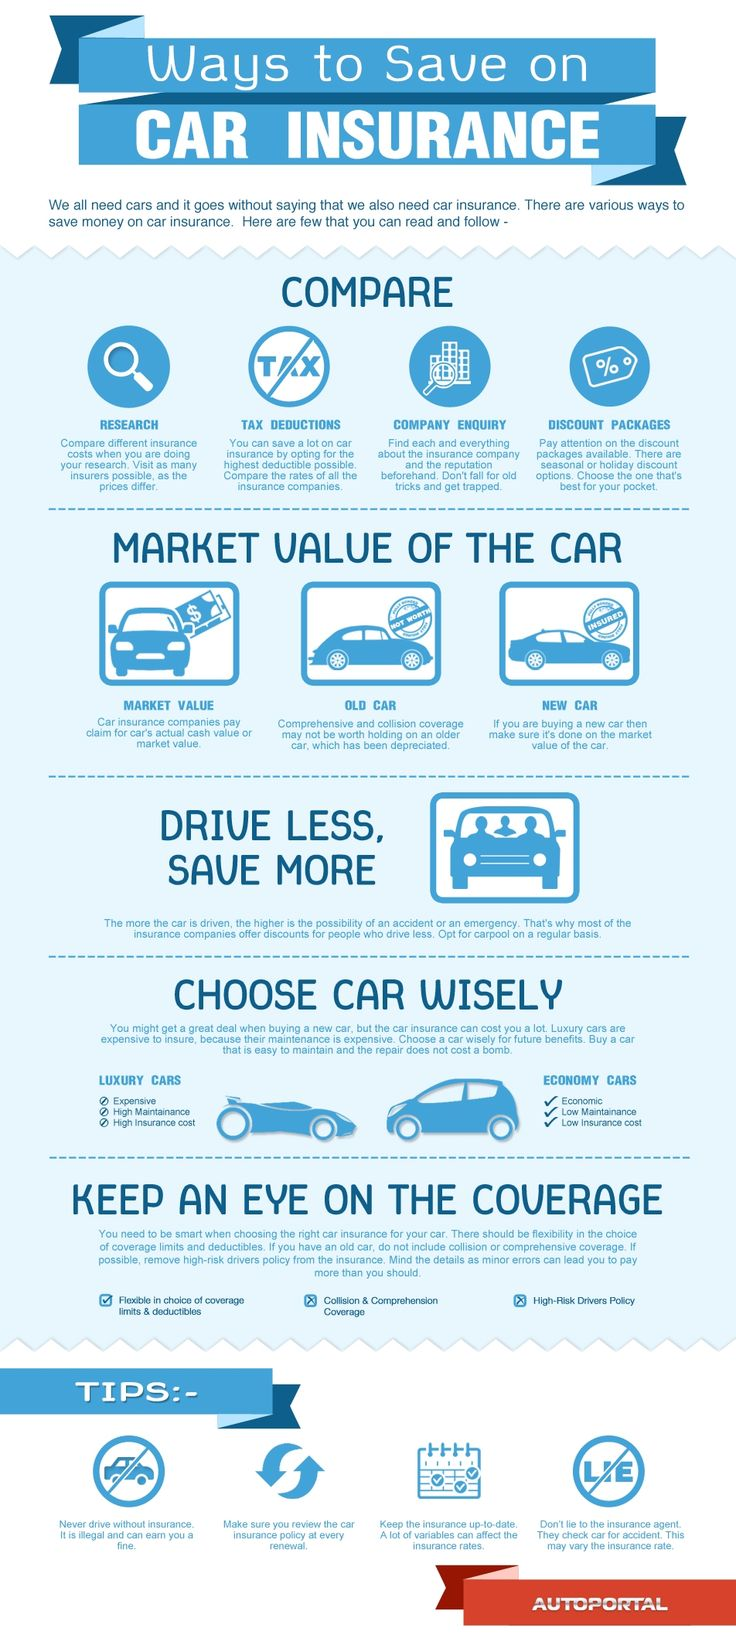 Car Insurance Quotes Comparison Impressive 23 Best Compare Car Insurance Images On Pinterest  Compare Car . Inspiration